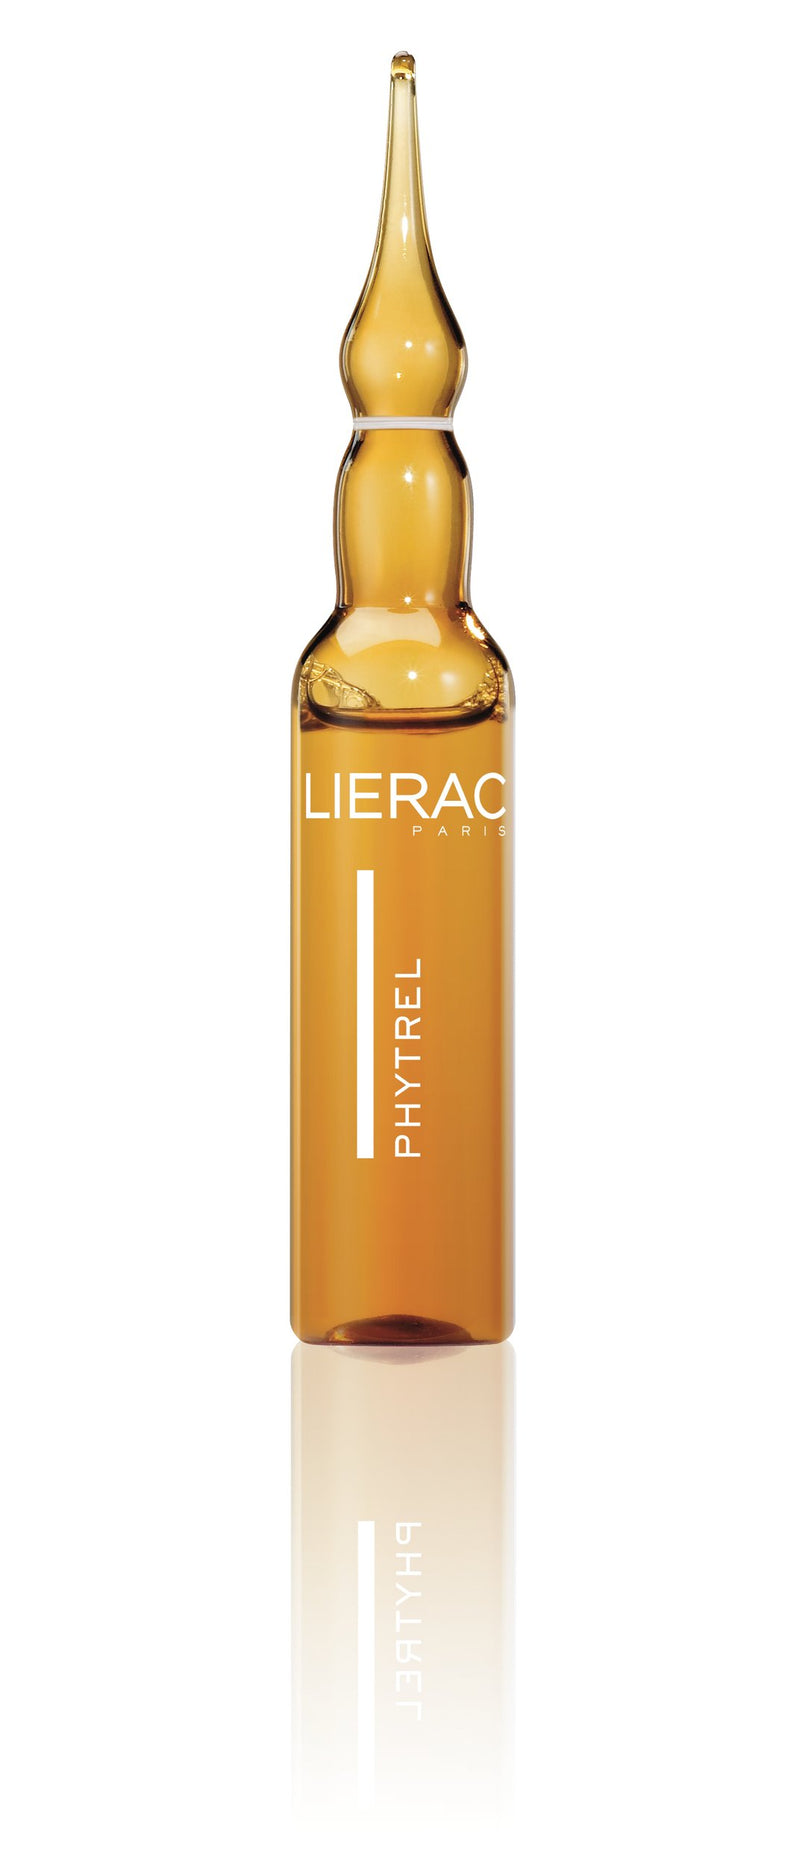 lierac-phytophaline-cellulite-correction-serum